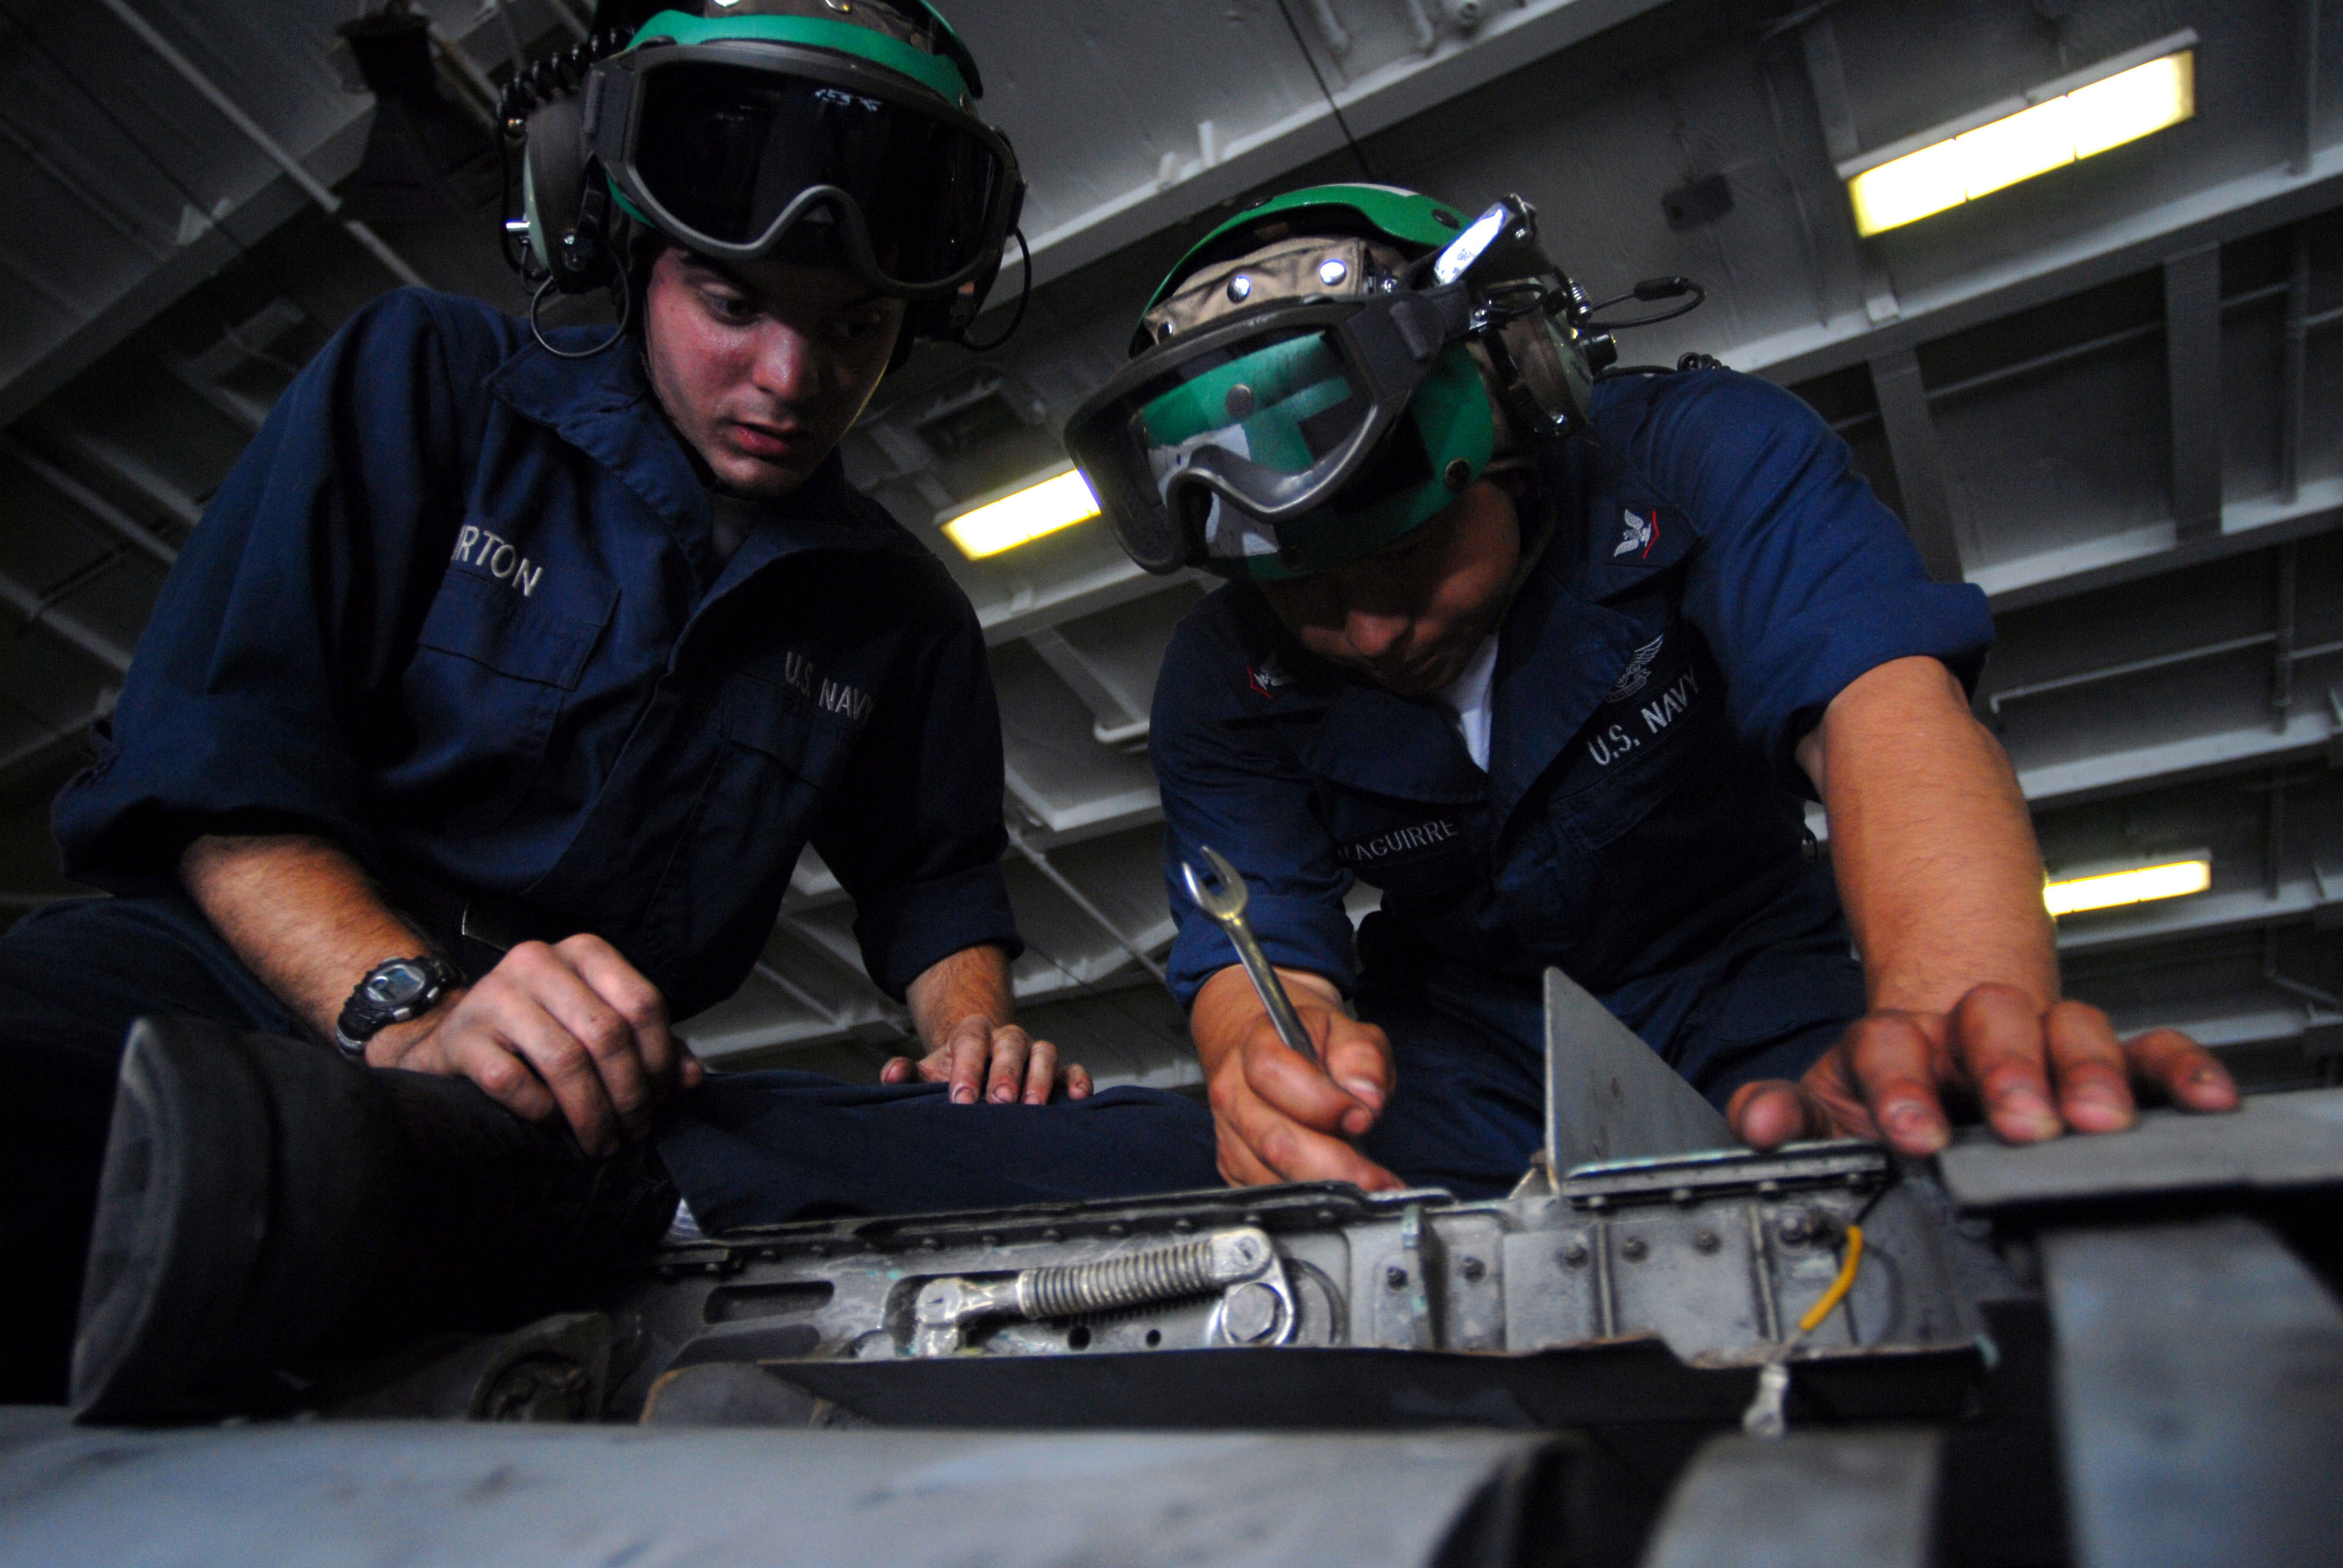 File:US Navy 070403-N-2659P-054 Aviation Structural Mechanic ...